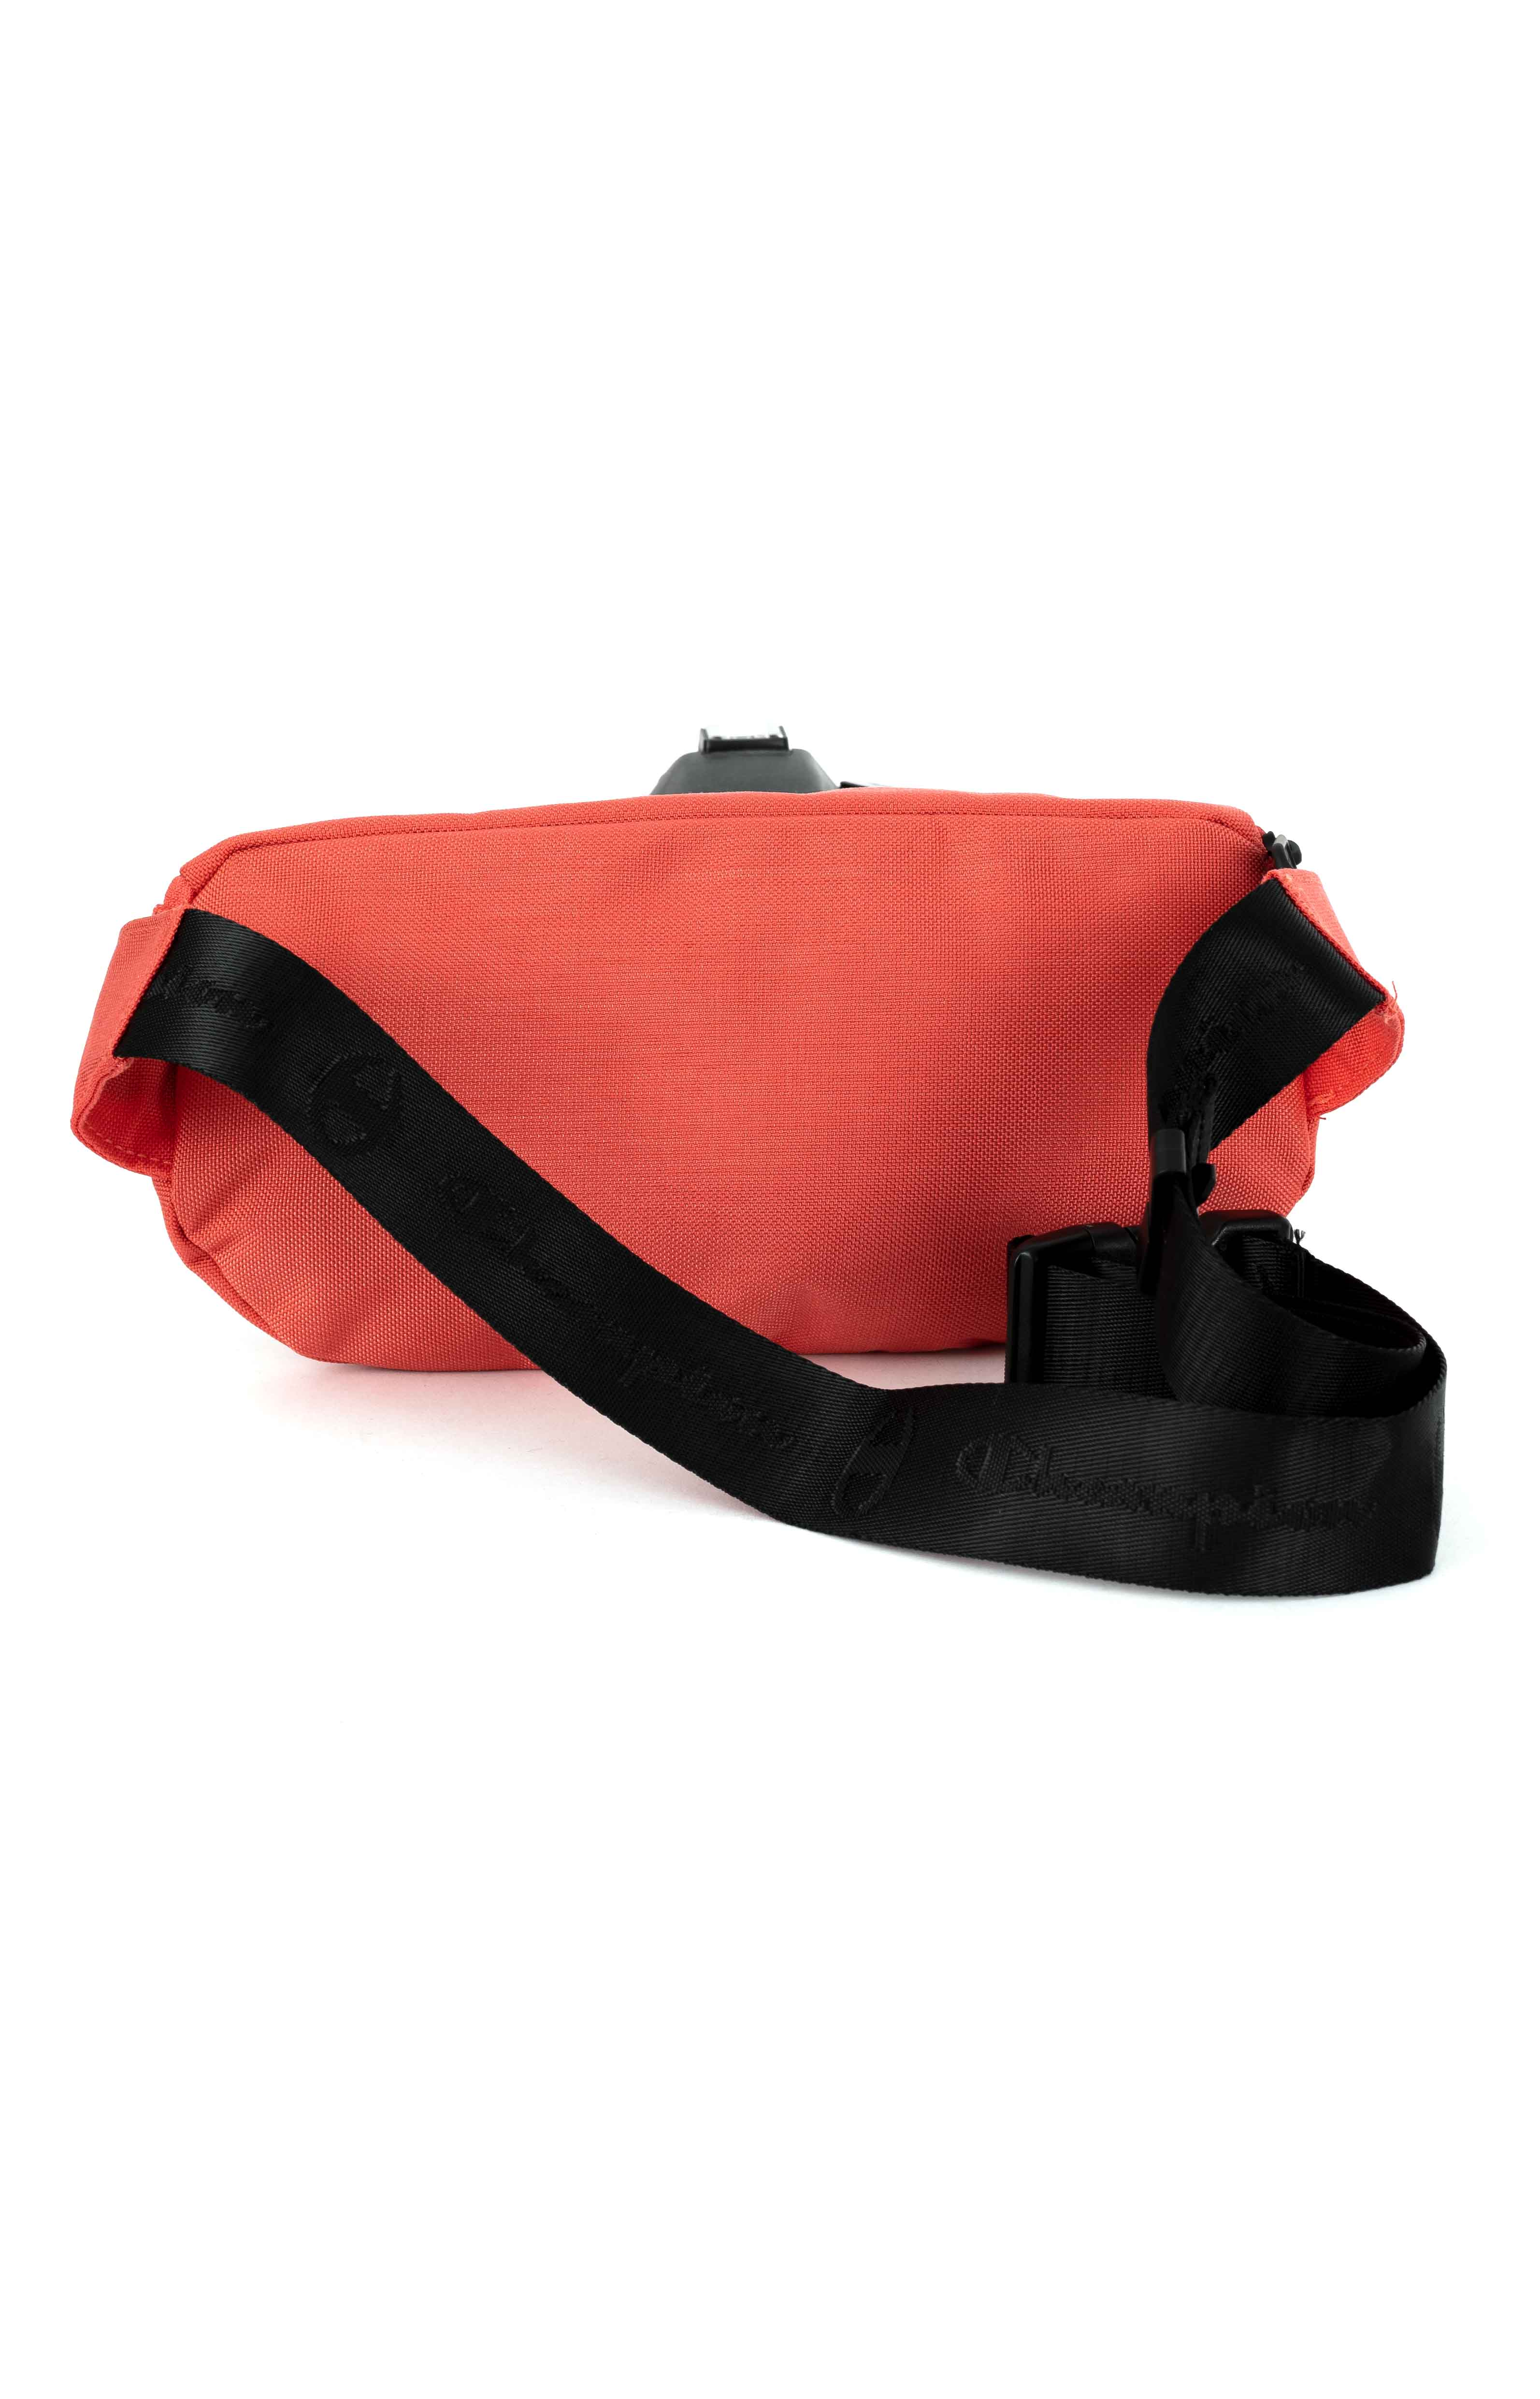 (CH1059) Prime Sling Pack - Coral 3